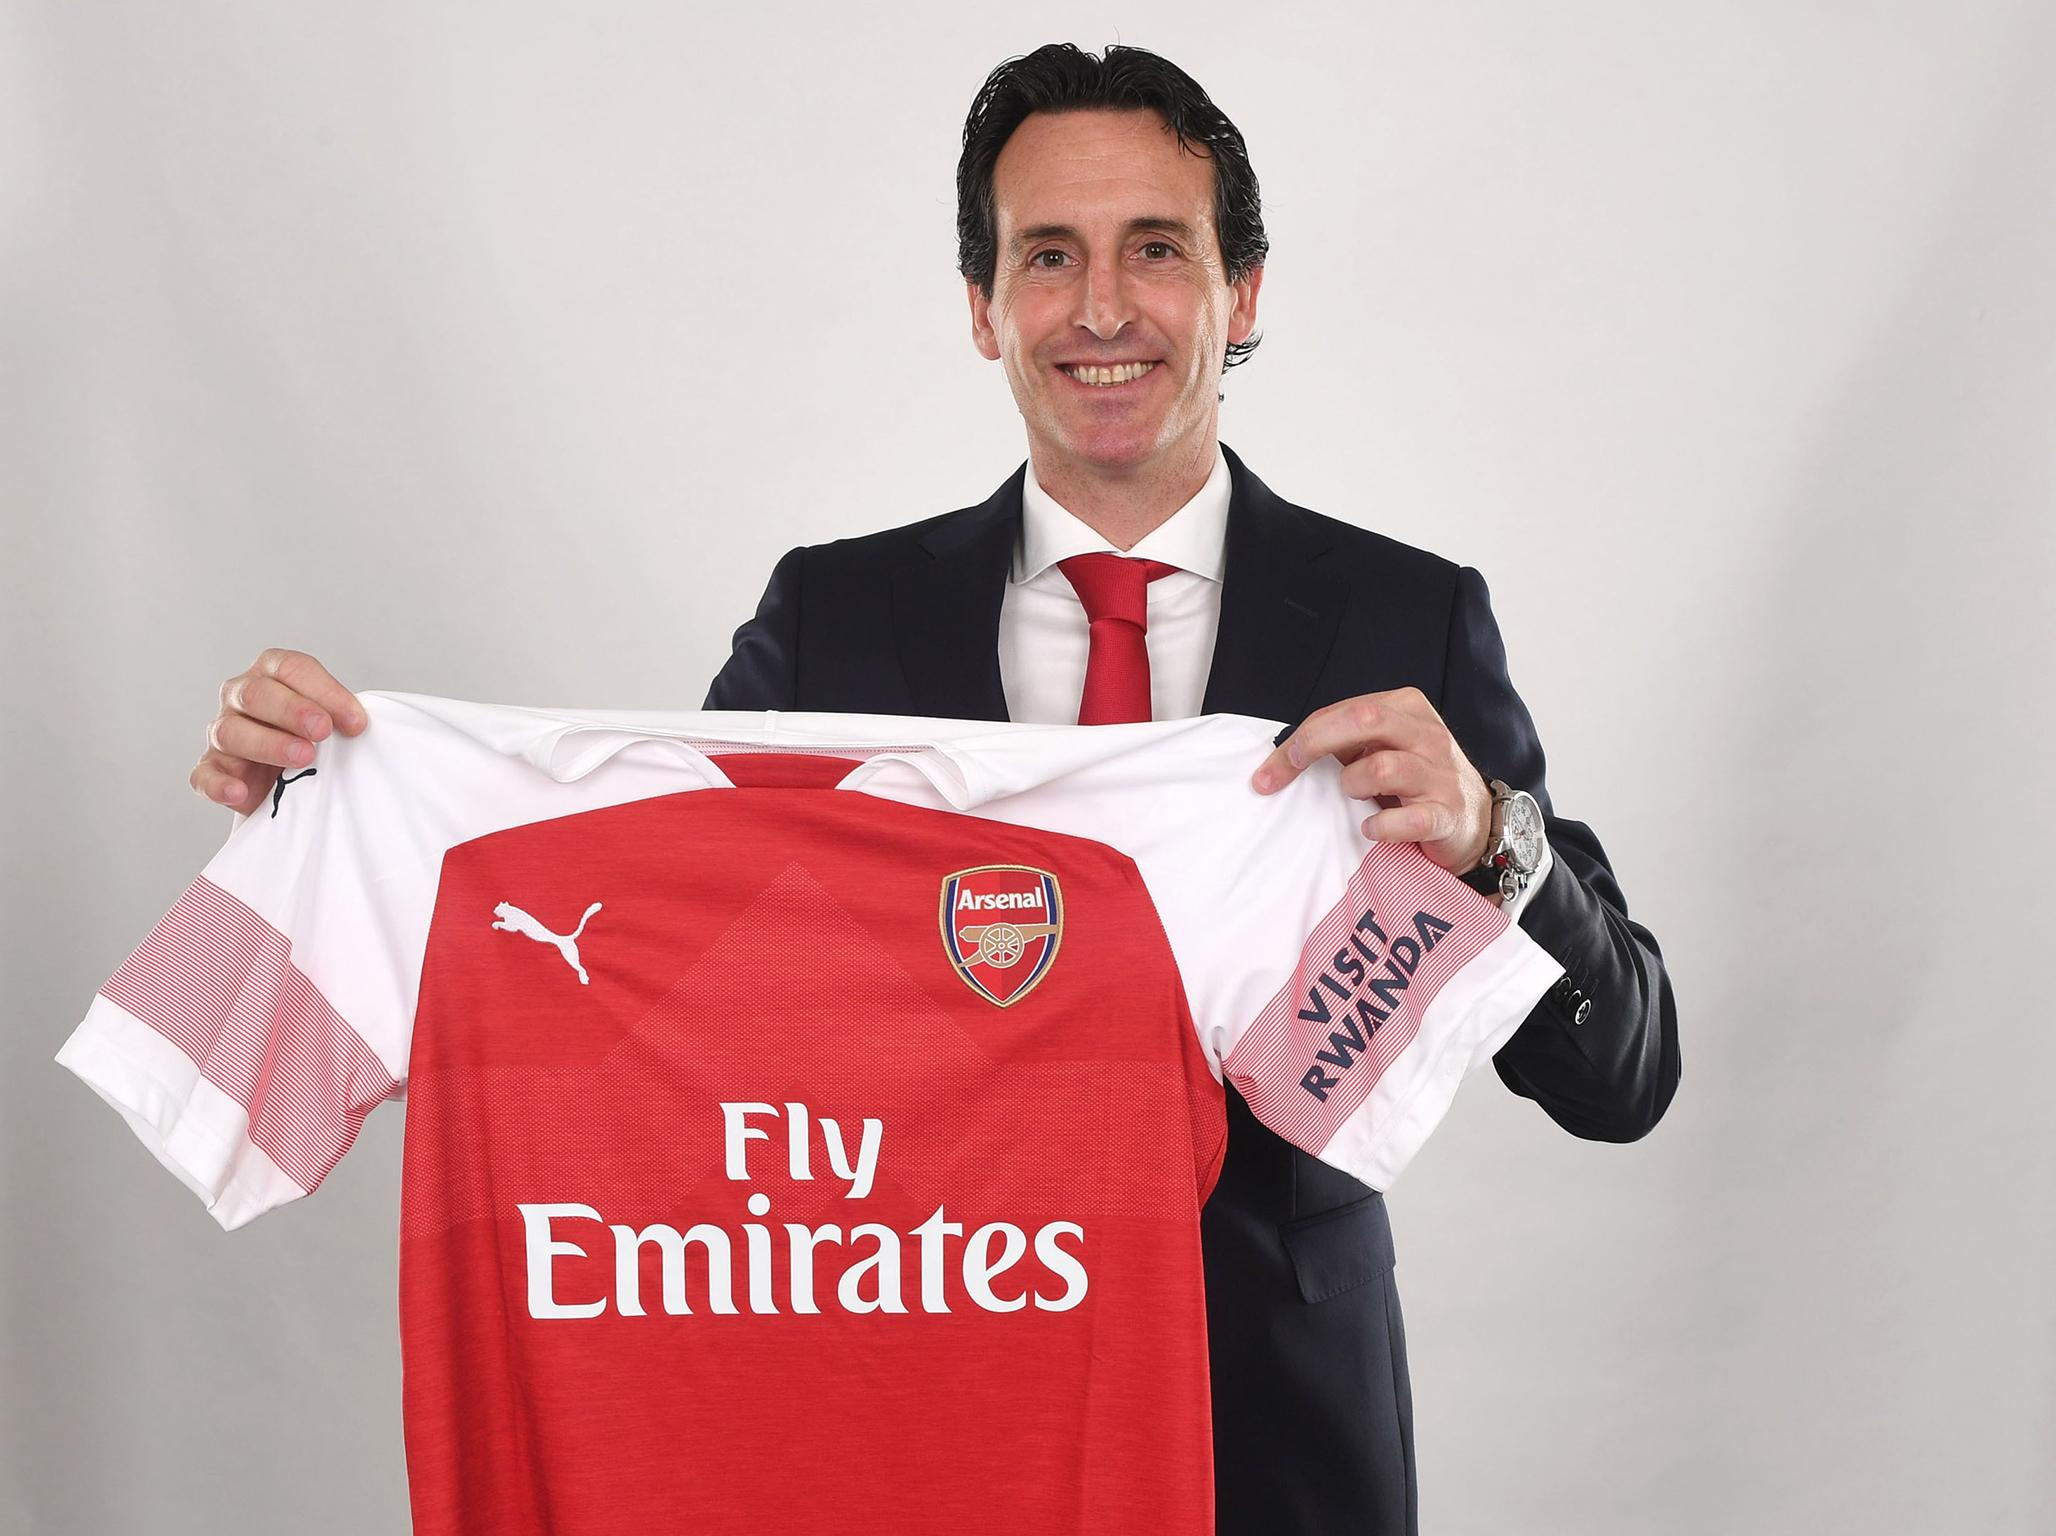 Arsenal Unai Emery press conference: Everything you need to know about new manager's first day in charge